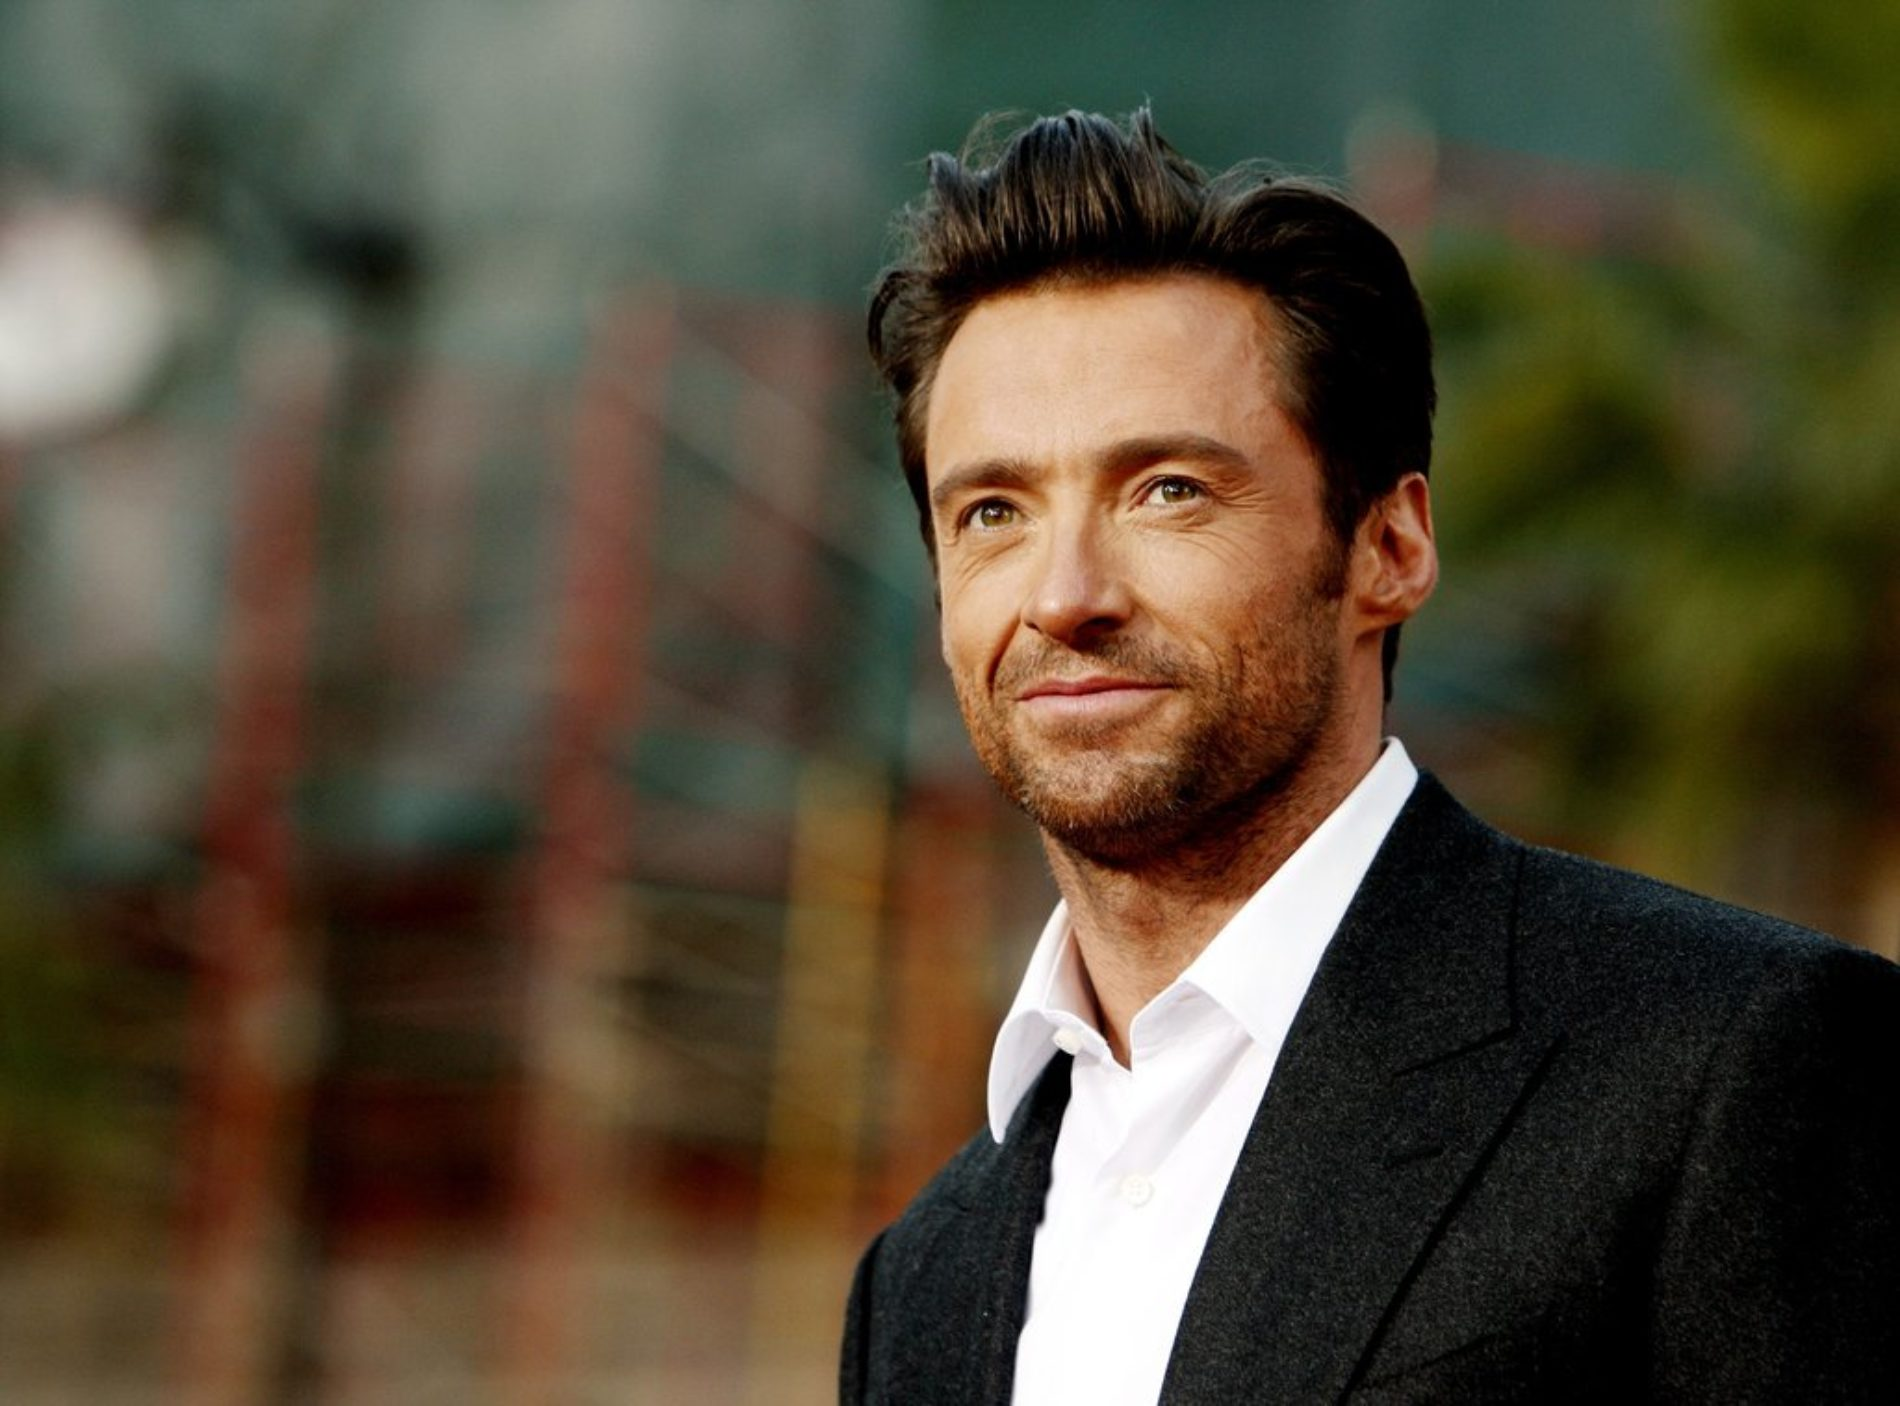 Hugh Jackman Helps Make Testicular Cancer Test a Twitter Trend